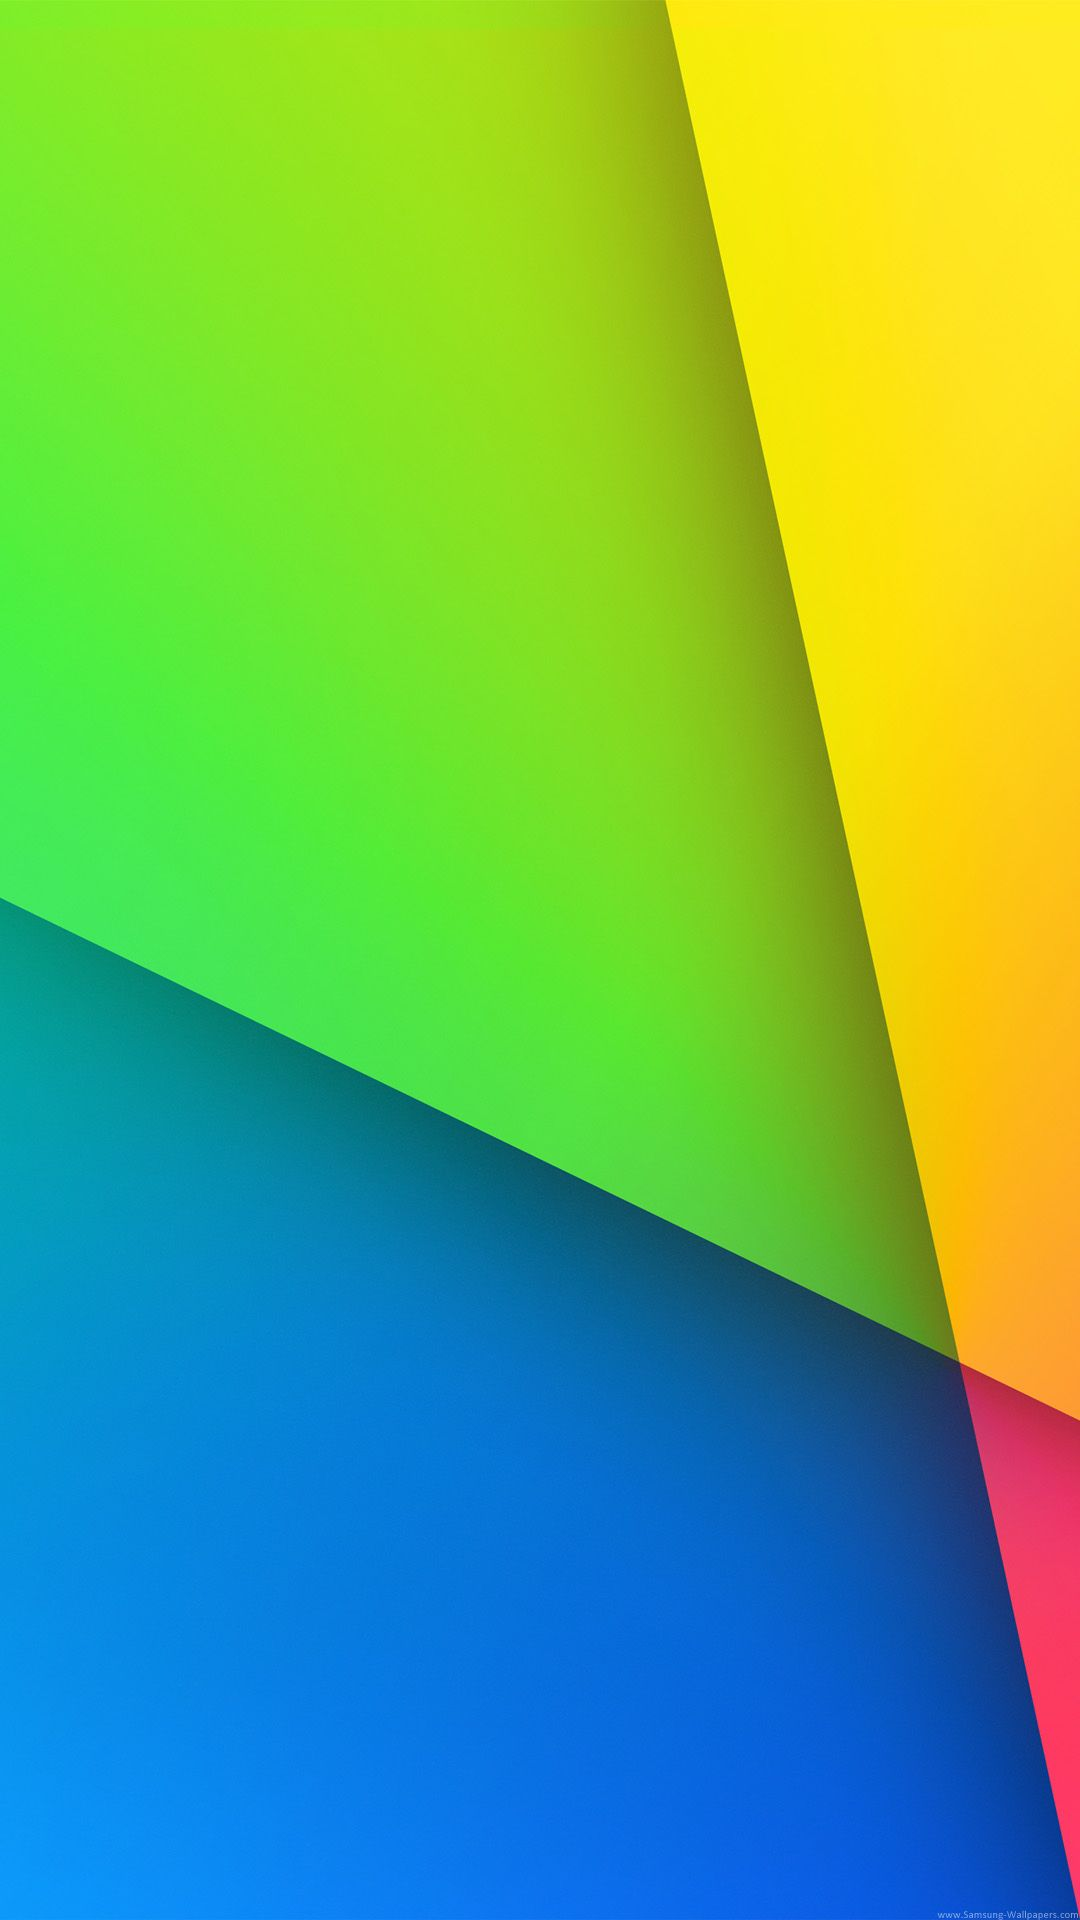 Android 44 kitkat official wallpapers available for download here android 44 kitkat official wallpapers available for download here voltagebd Images